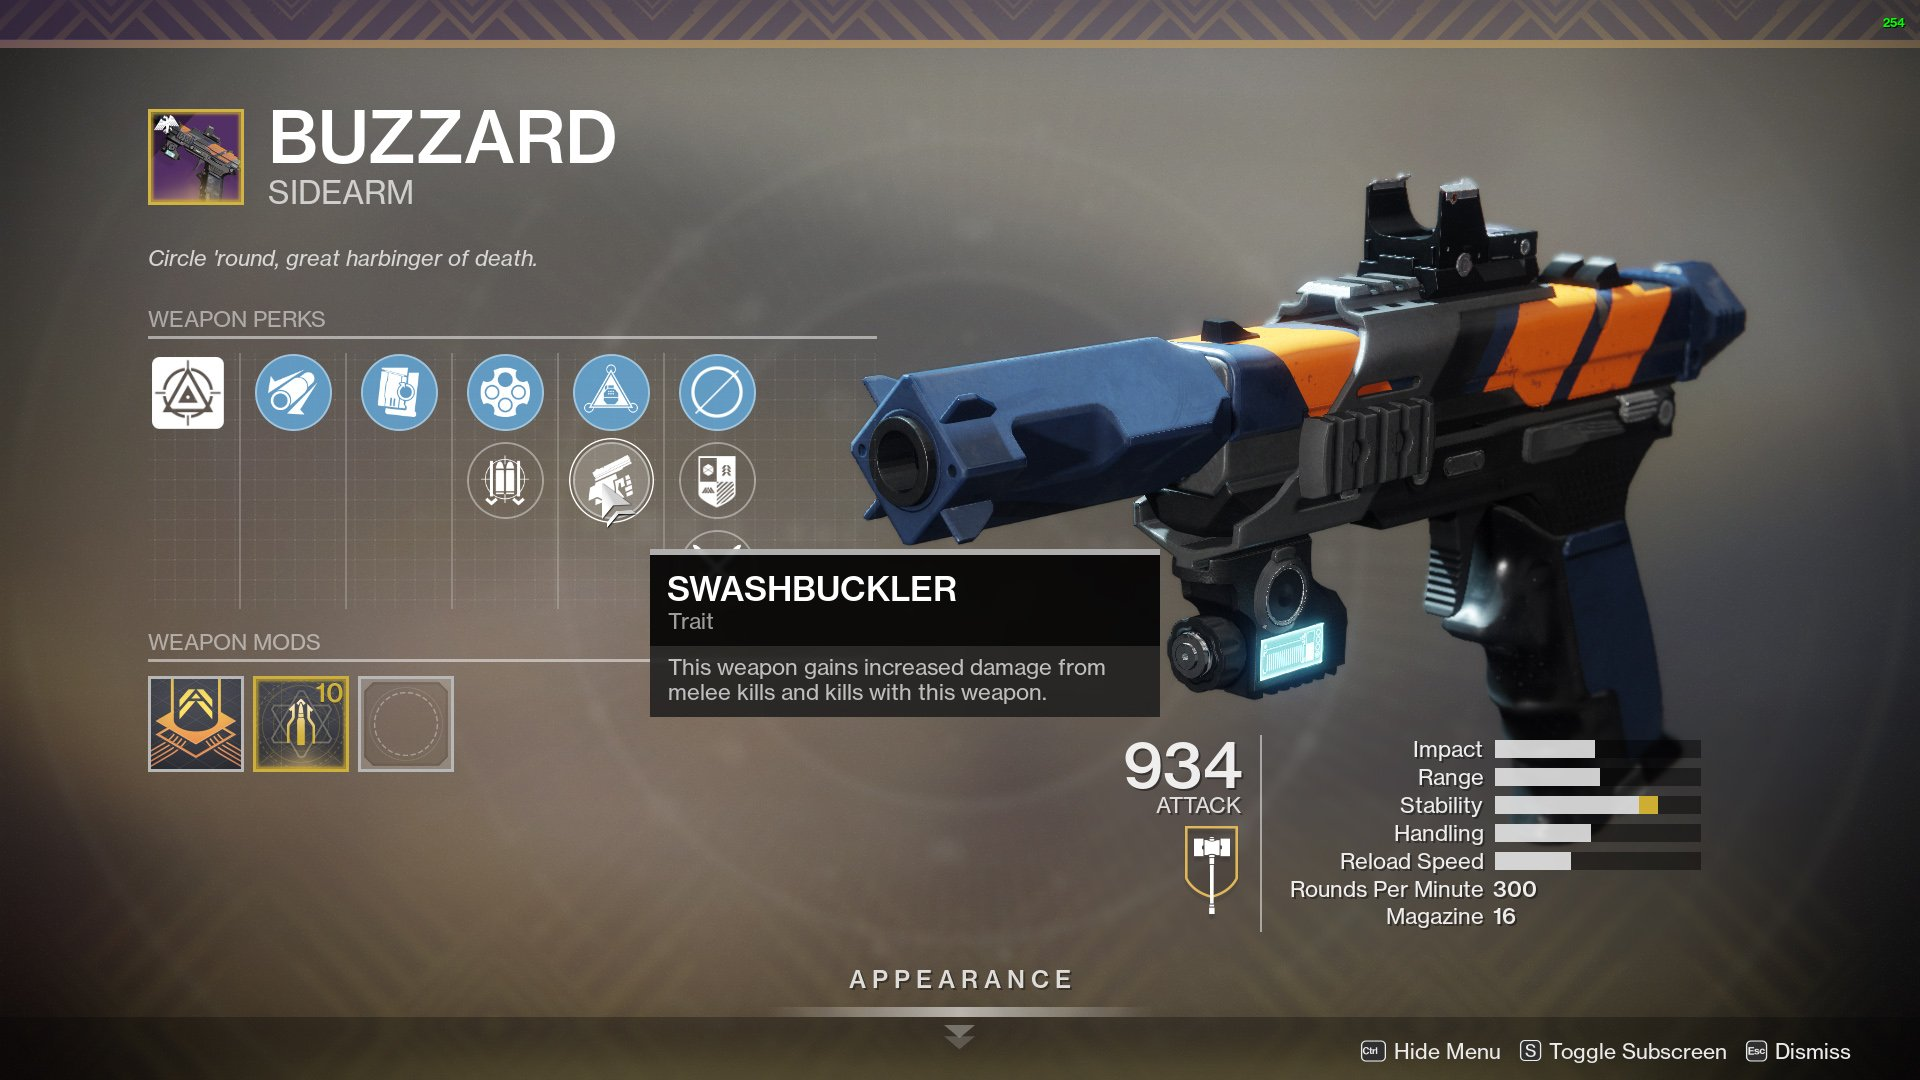 destiny 2 buzzard is it good